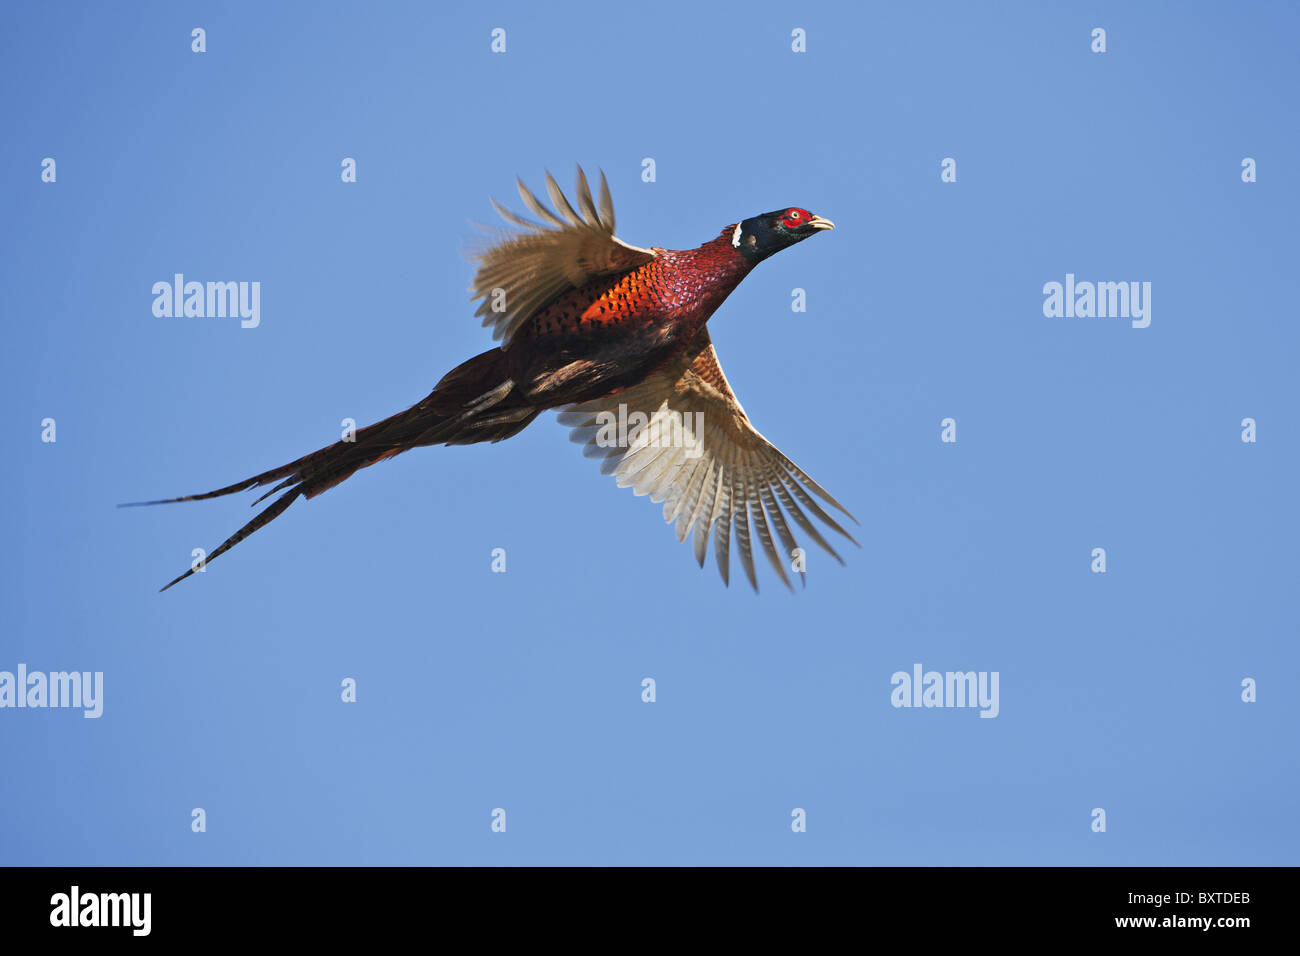 Ring-Necked Pheasant in flight against blue sky. - Stock Image